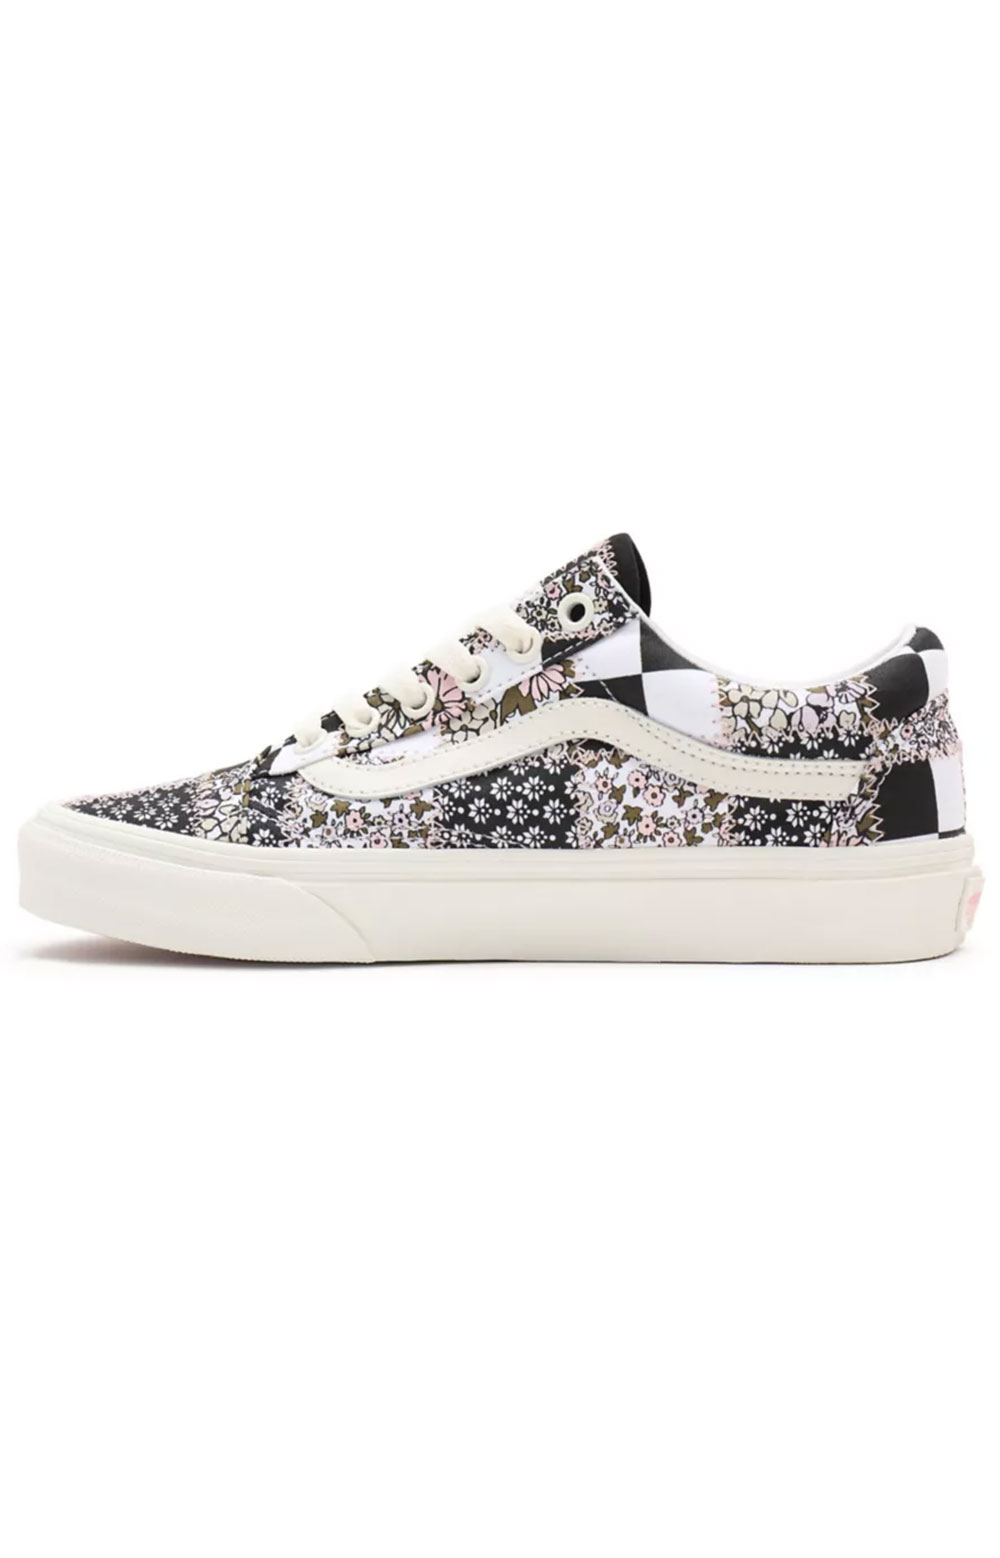 (8G19FY) Patchwork Floral Old Skool Shoes - Multi/Marshmallow  2